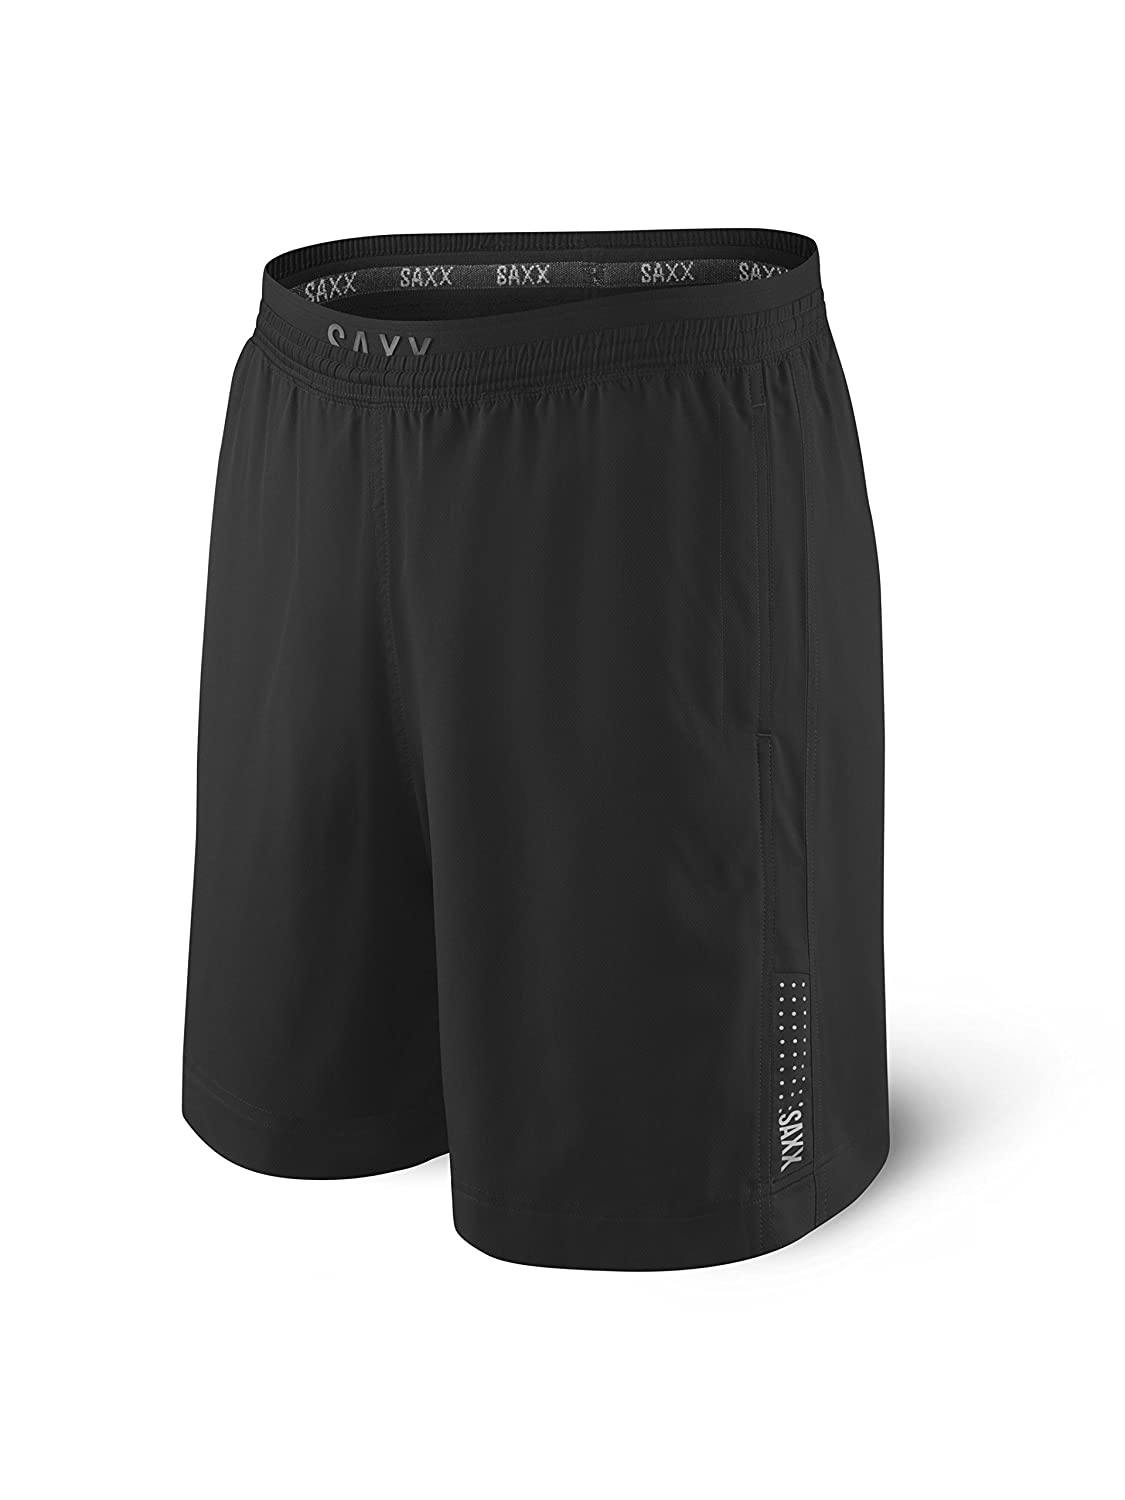 Saxx Underwear Men's Kinetic 2N1 Run Long 7 Athletic Shorts with Ballpark Pouch SXRL27